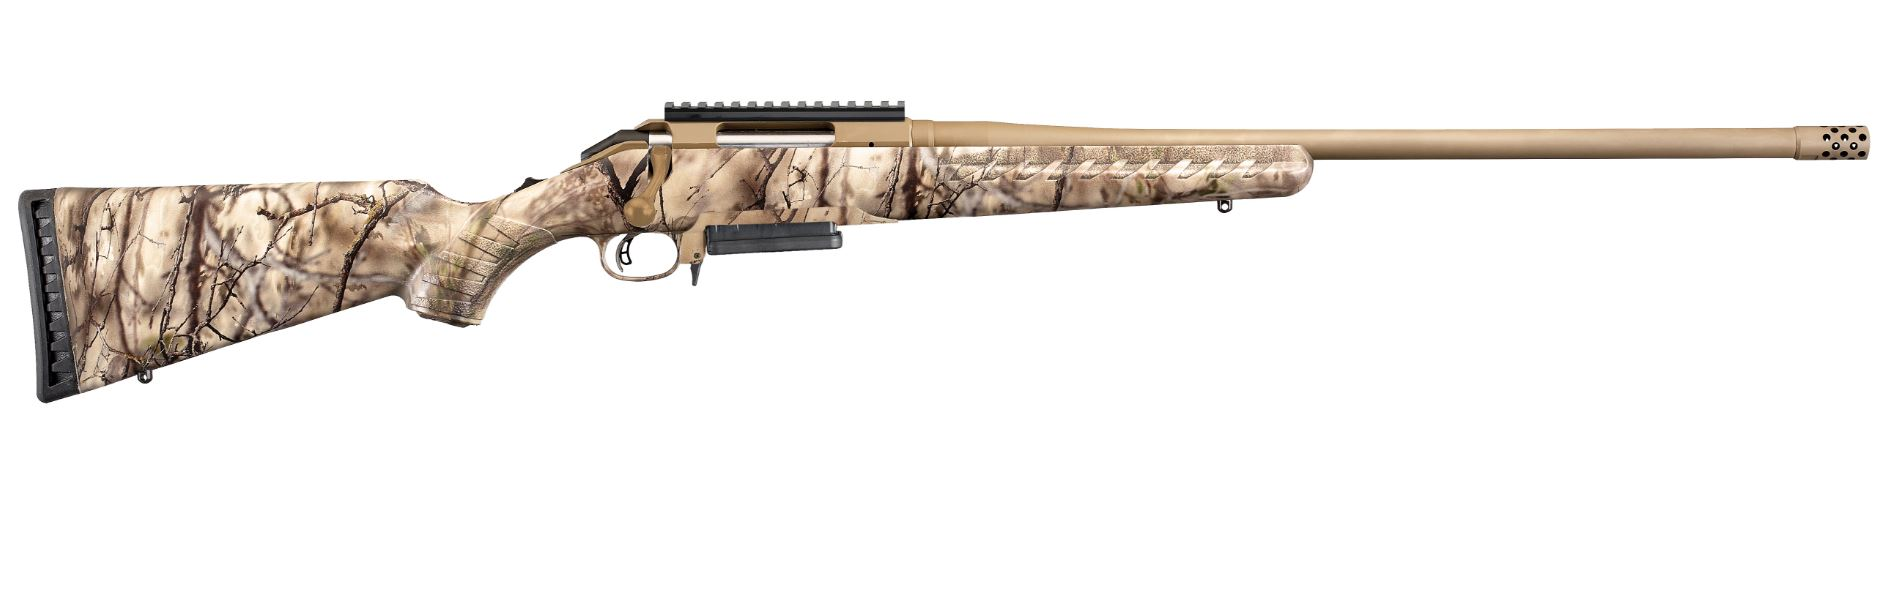 Ruger American Rifle 7mm-08